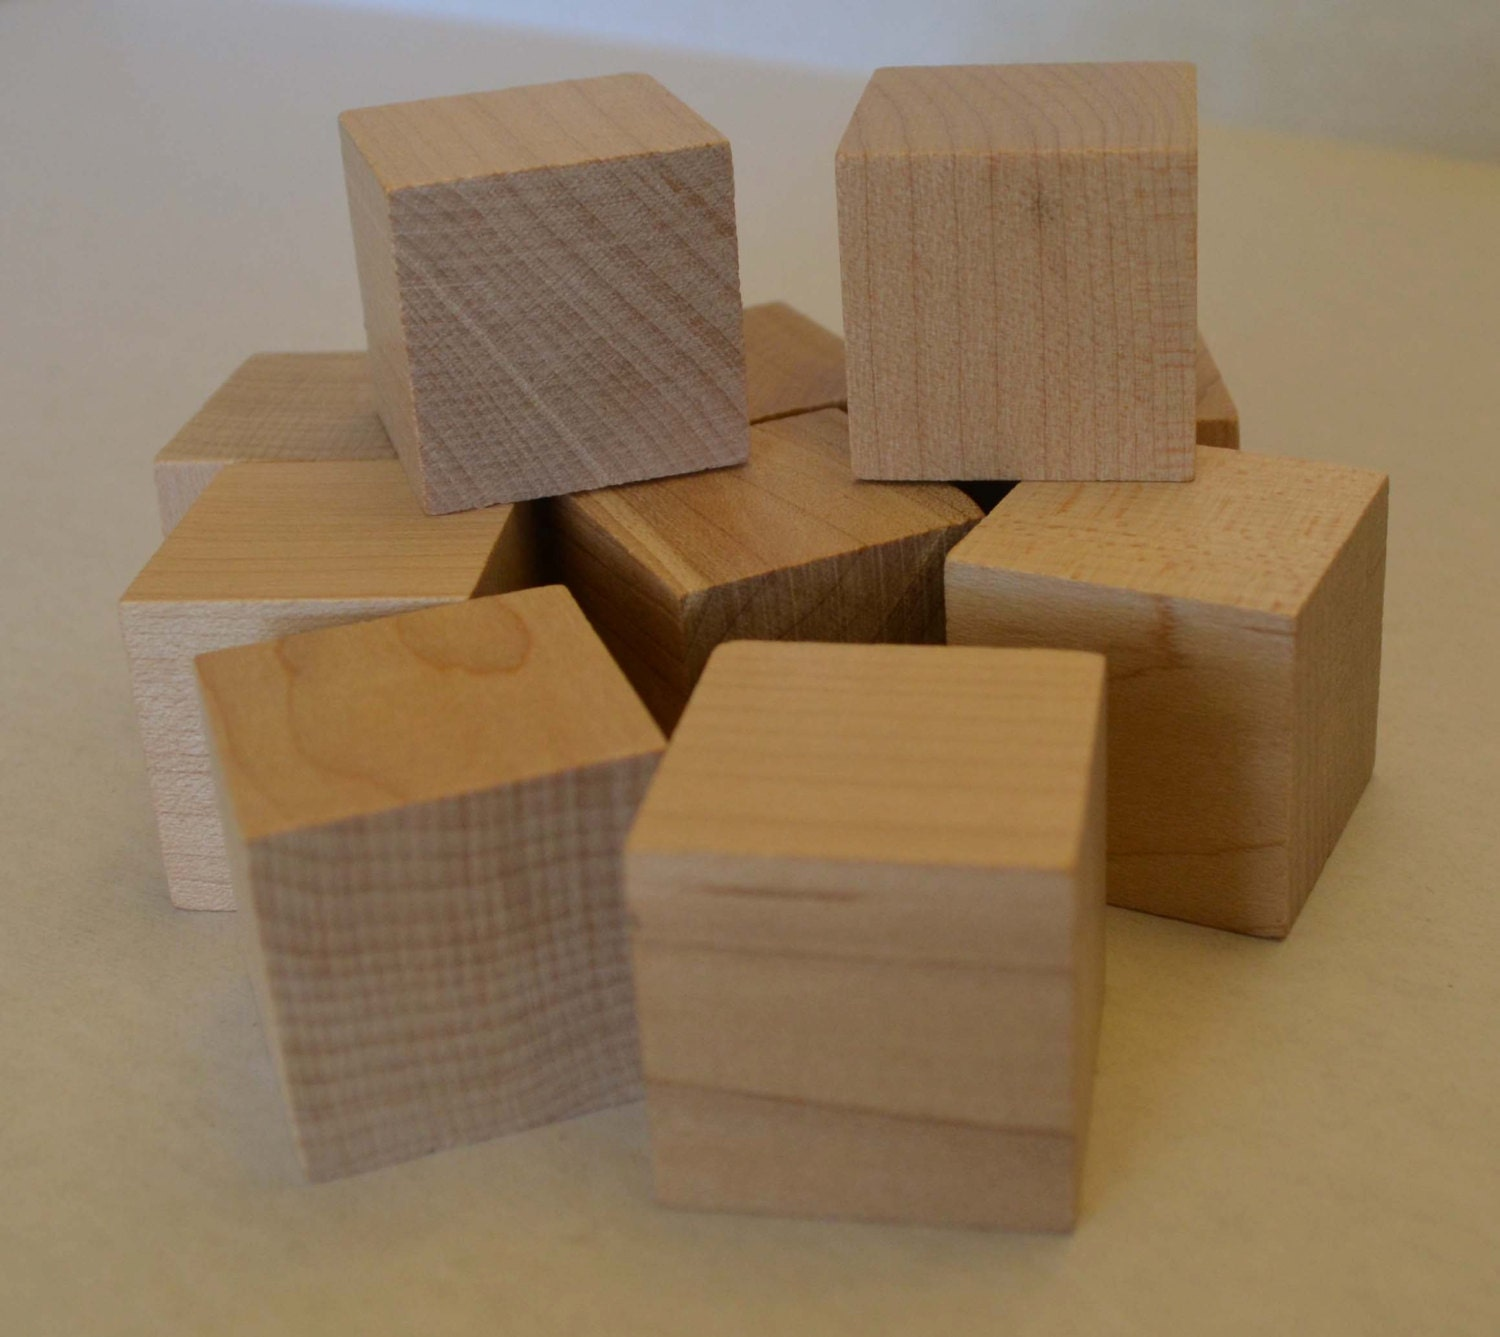 1 solid wood blocks set of 10 unfinished wood cube for Unfinished wood pieces for crafts